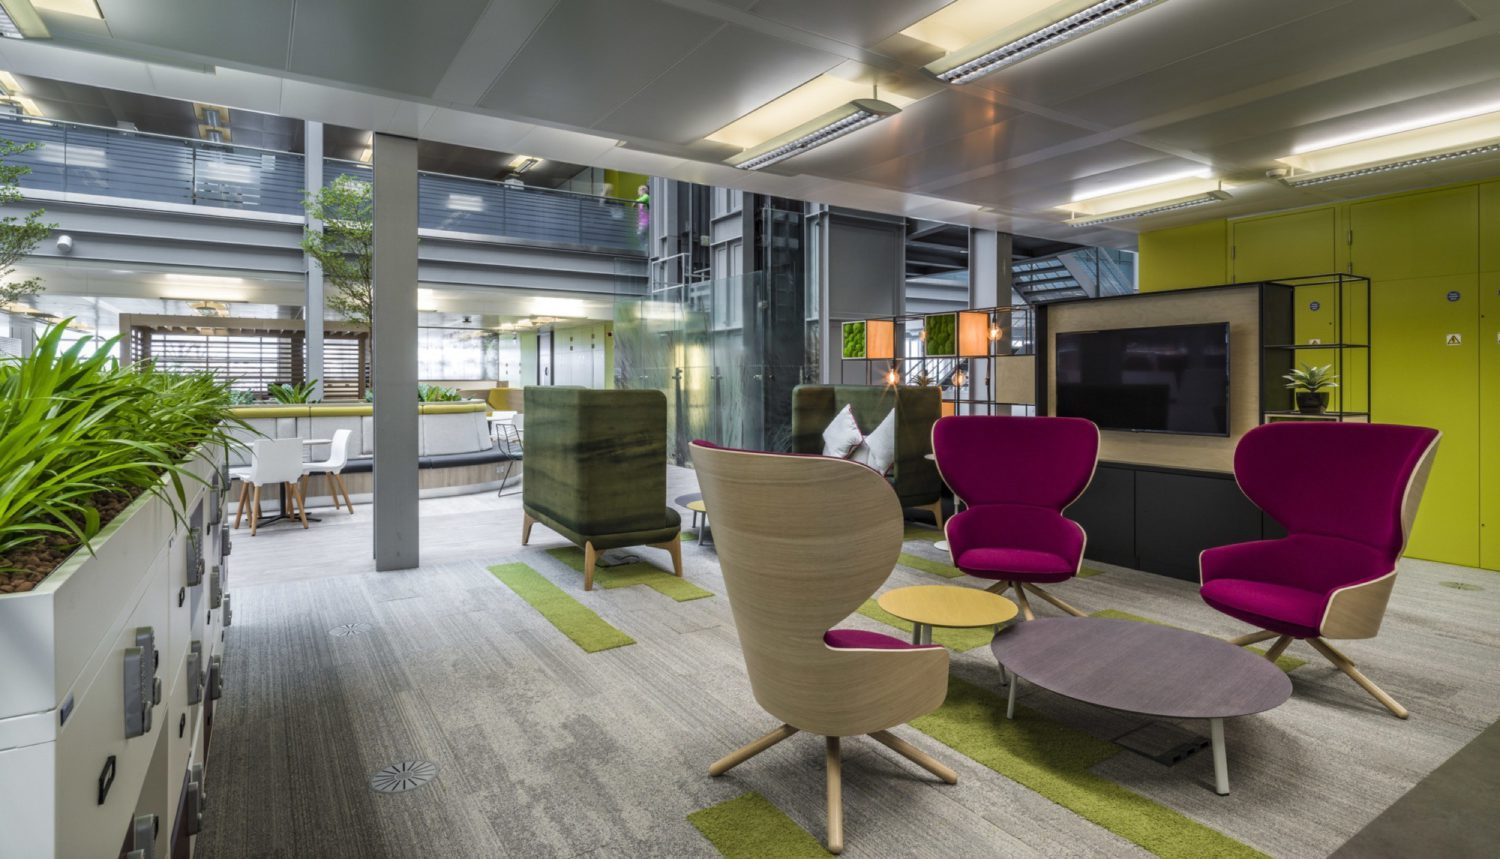 HMRC breakout area fit out